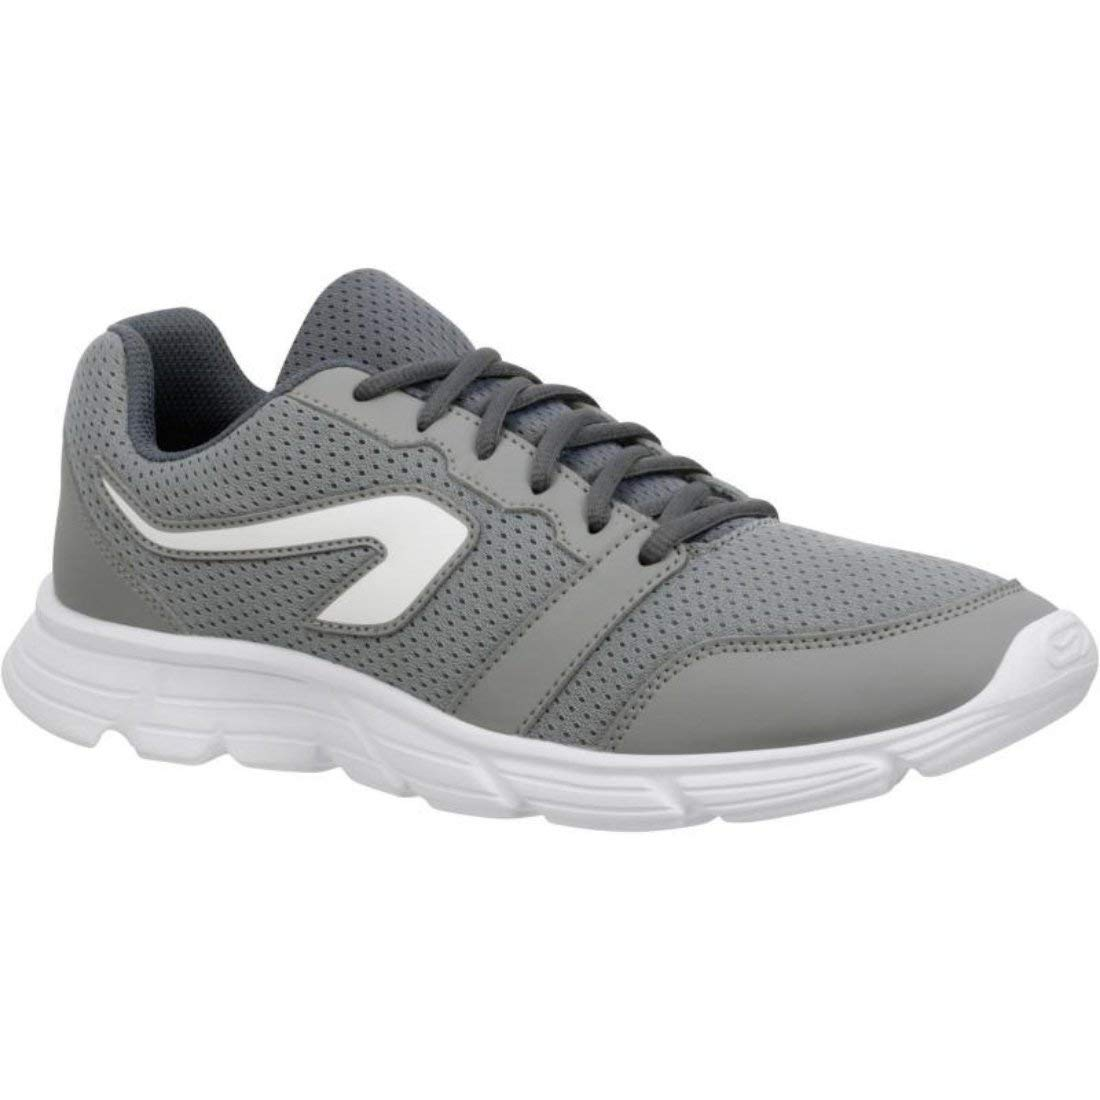 27bafc97fadc Kalenji Run One Men s Running Shoes - Grey  Buy Online at Low Prices in  India - Amazon.in